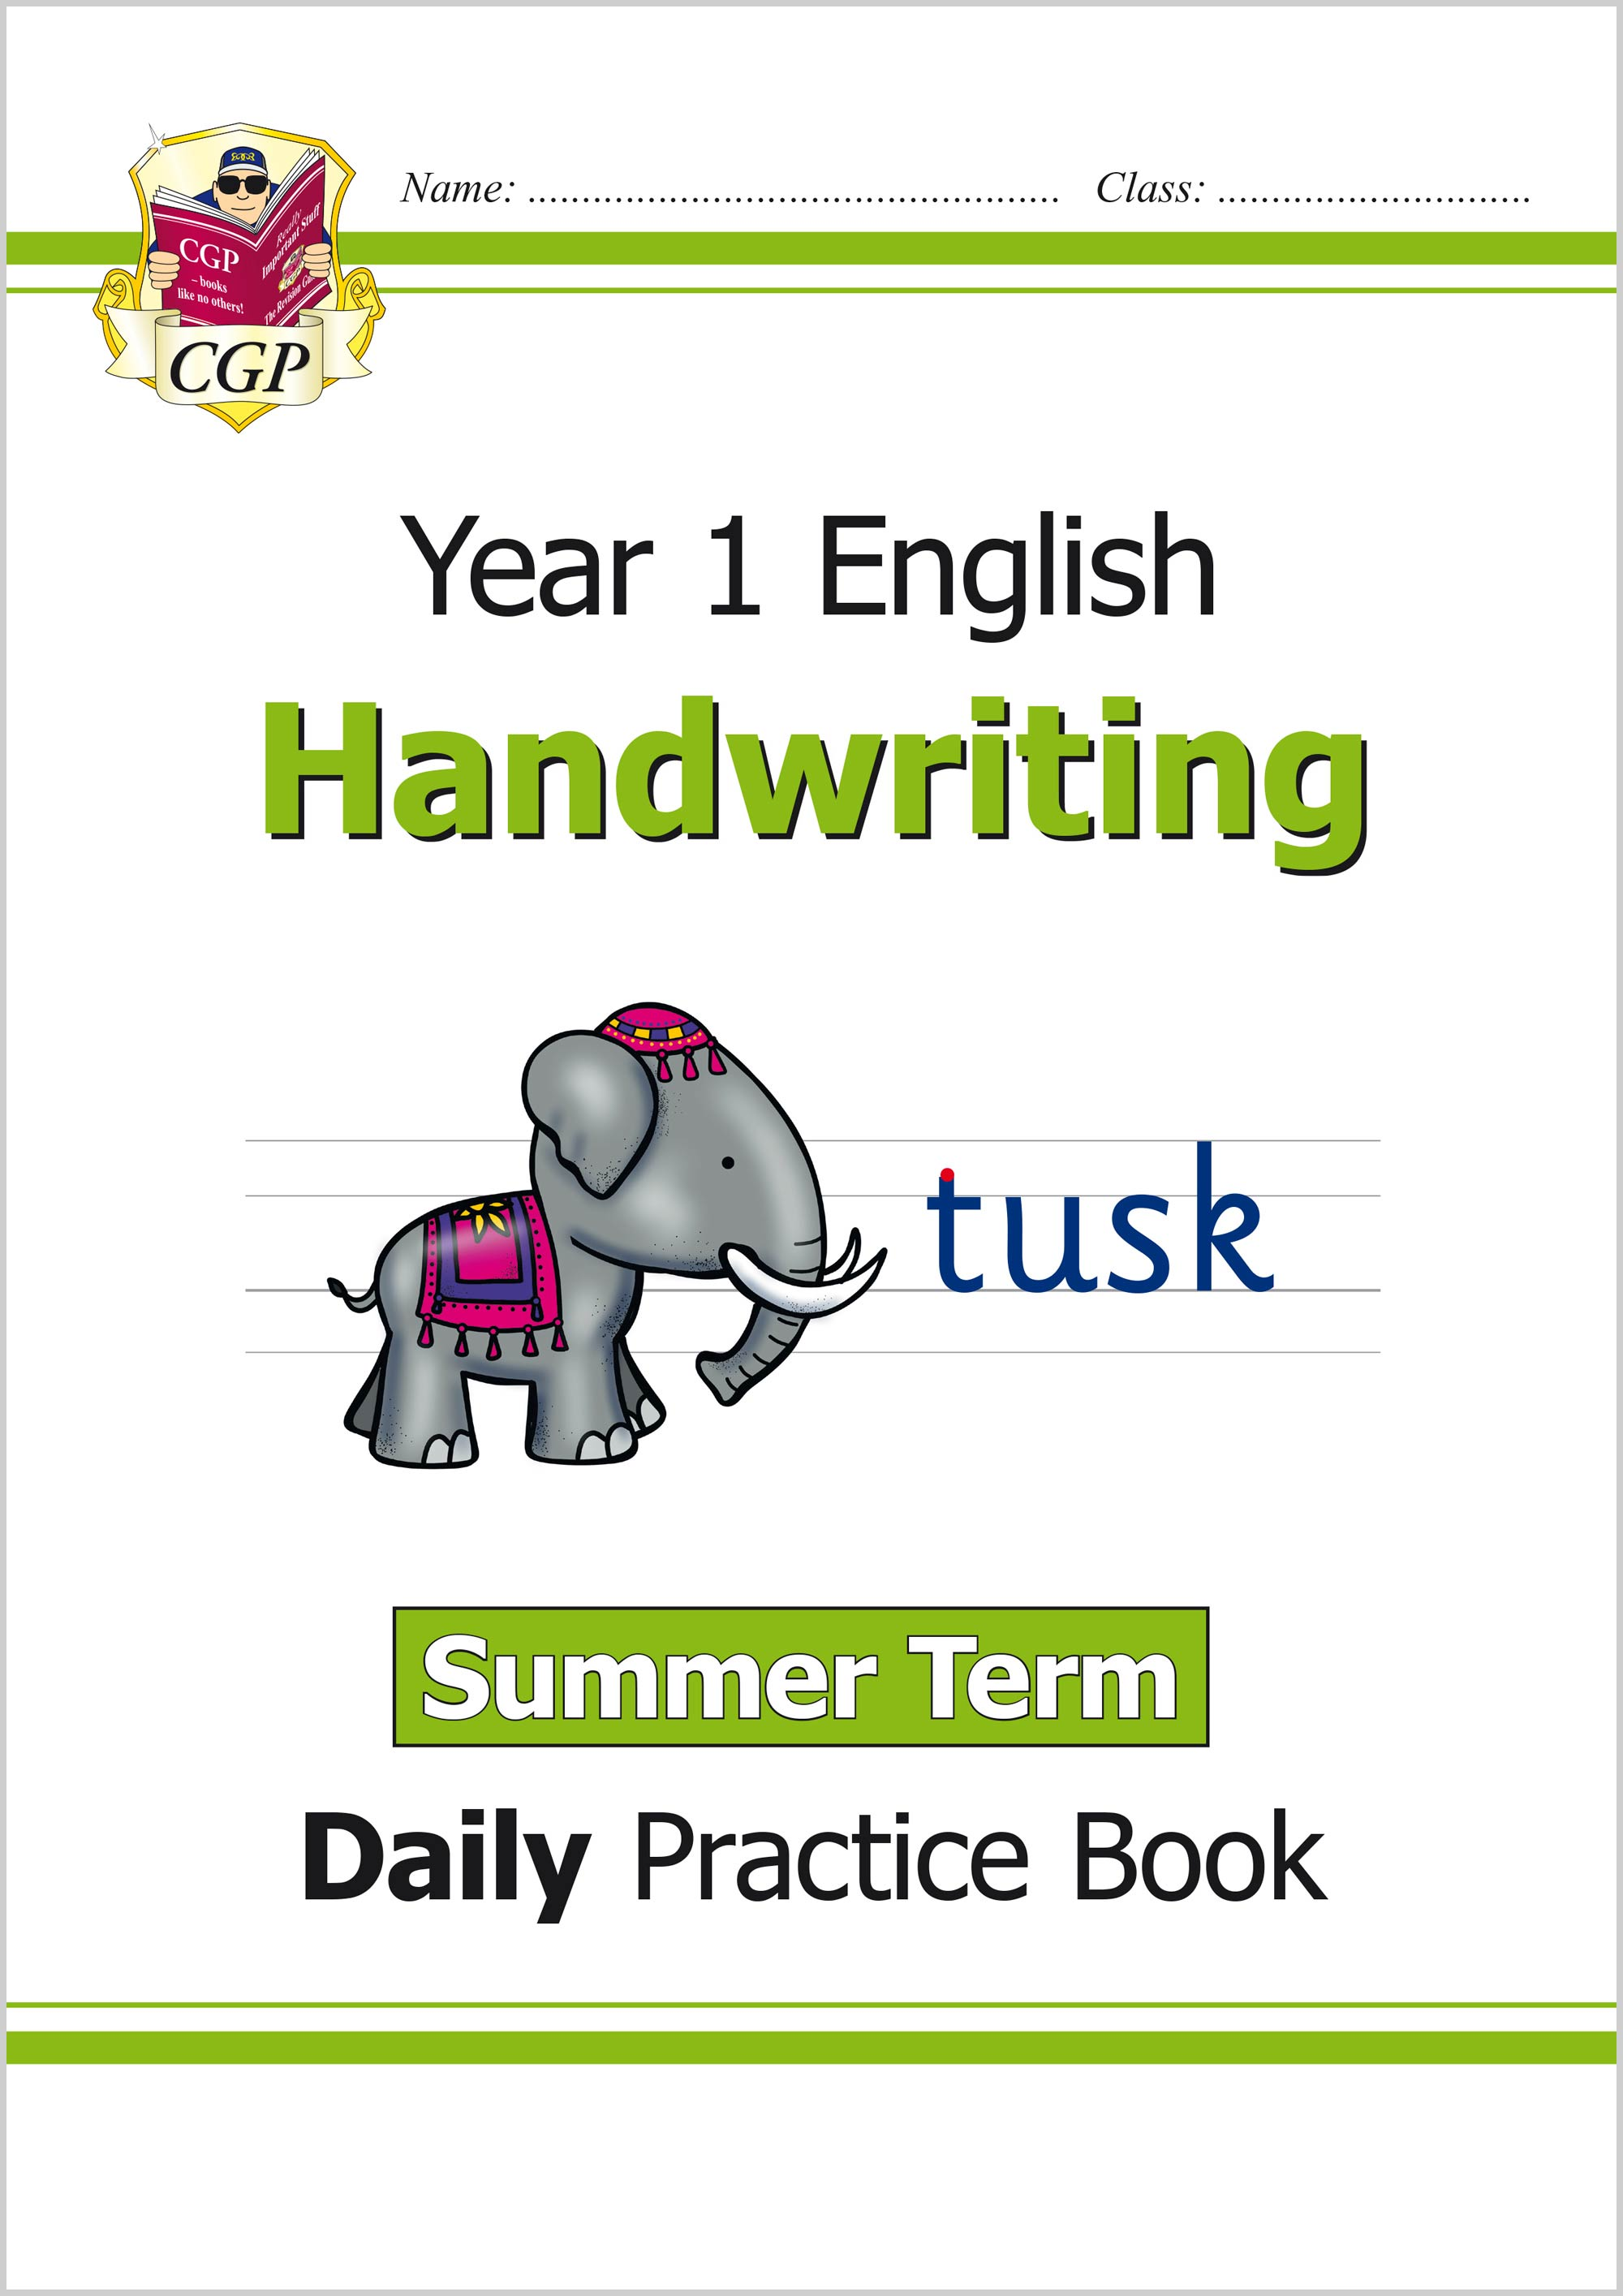 E1HWSU11 - New KS1 Handwriting Daily Practice Book: Year 1 - Summer Term